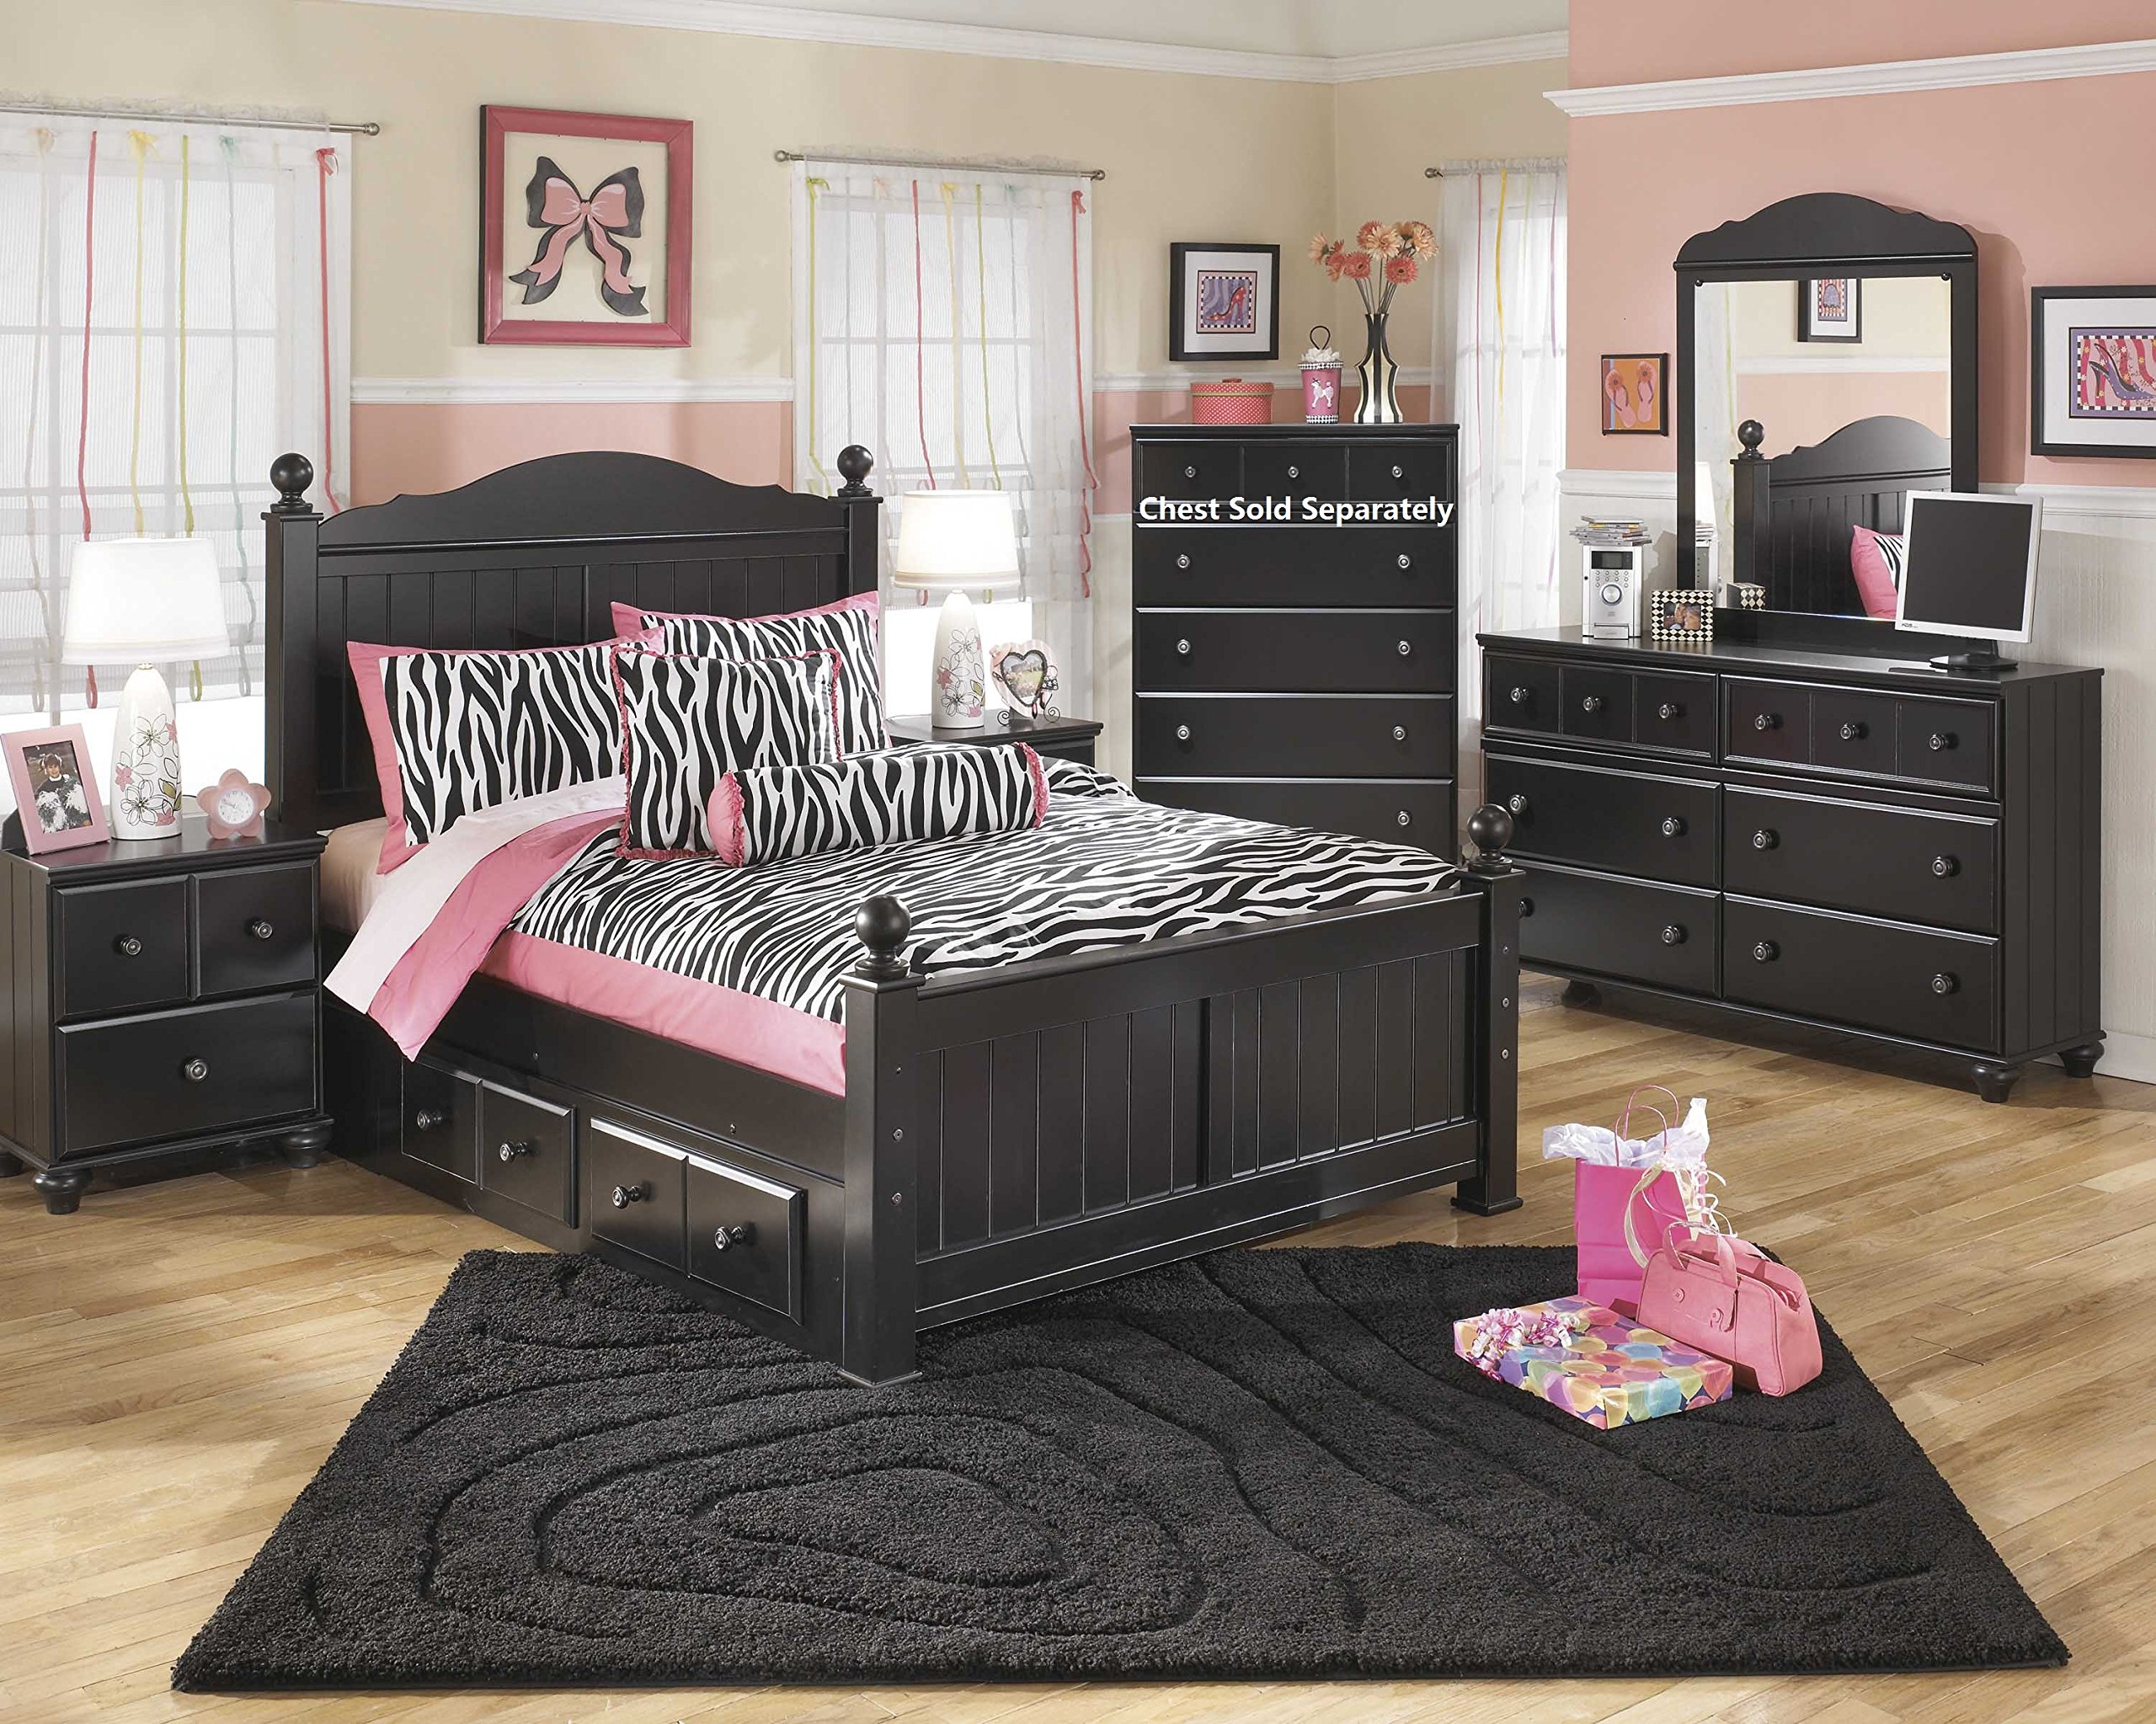 Jaidyn Youth Wood Poster Bed Room Set in Rich Black Finish, Full Bed, Dresser, Mirror, Nightstand